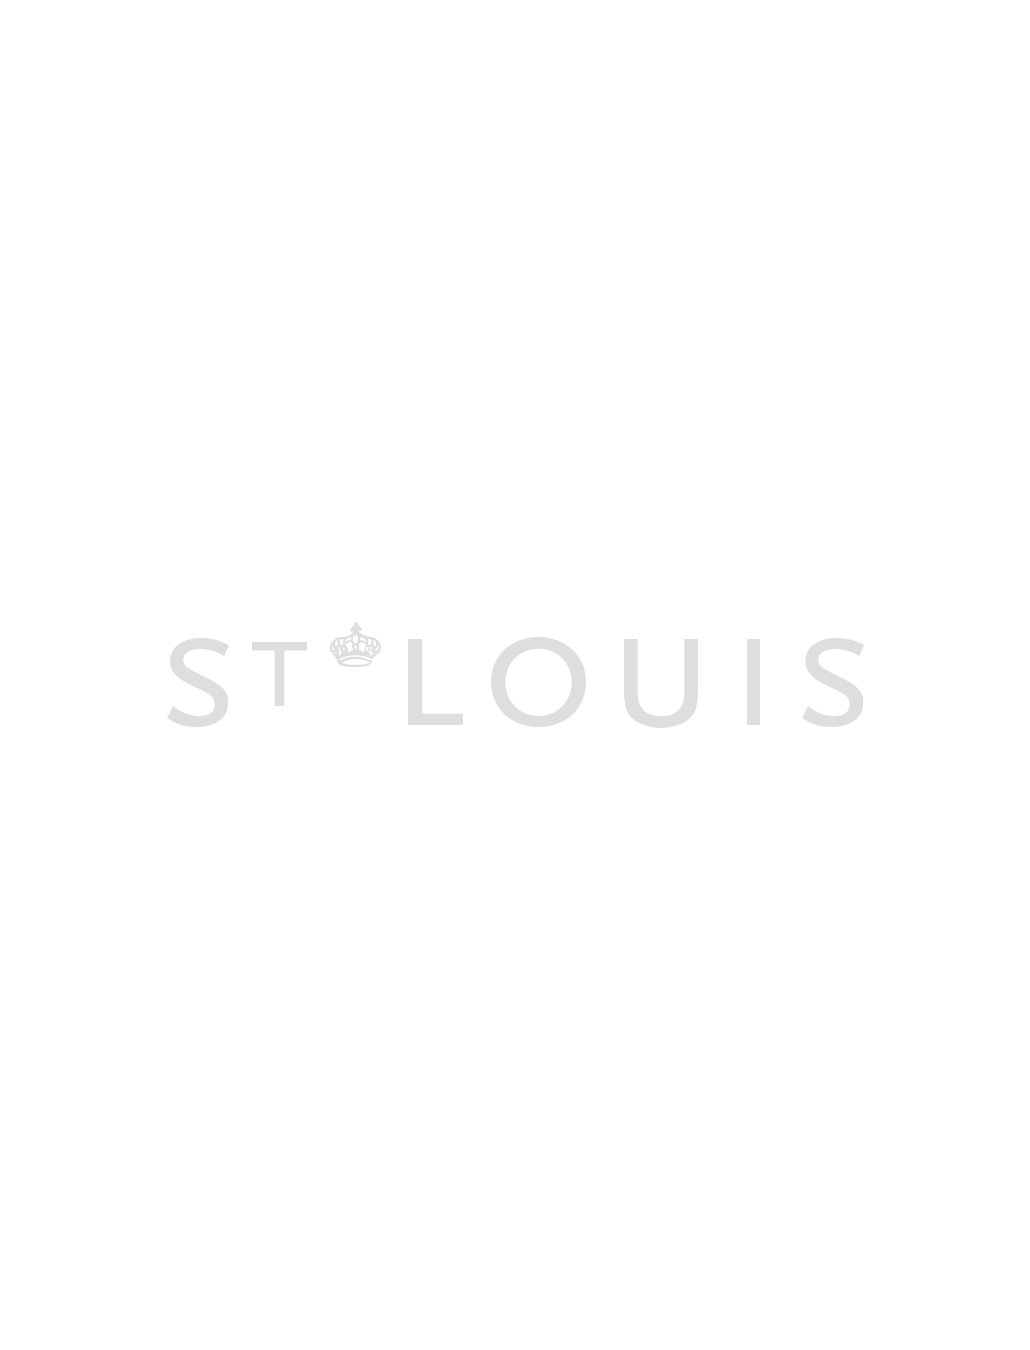 Official website of the Crystal Saint Louis